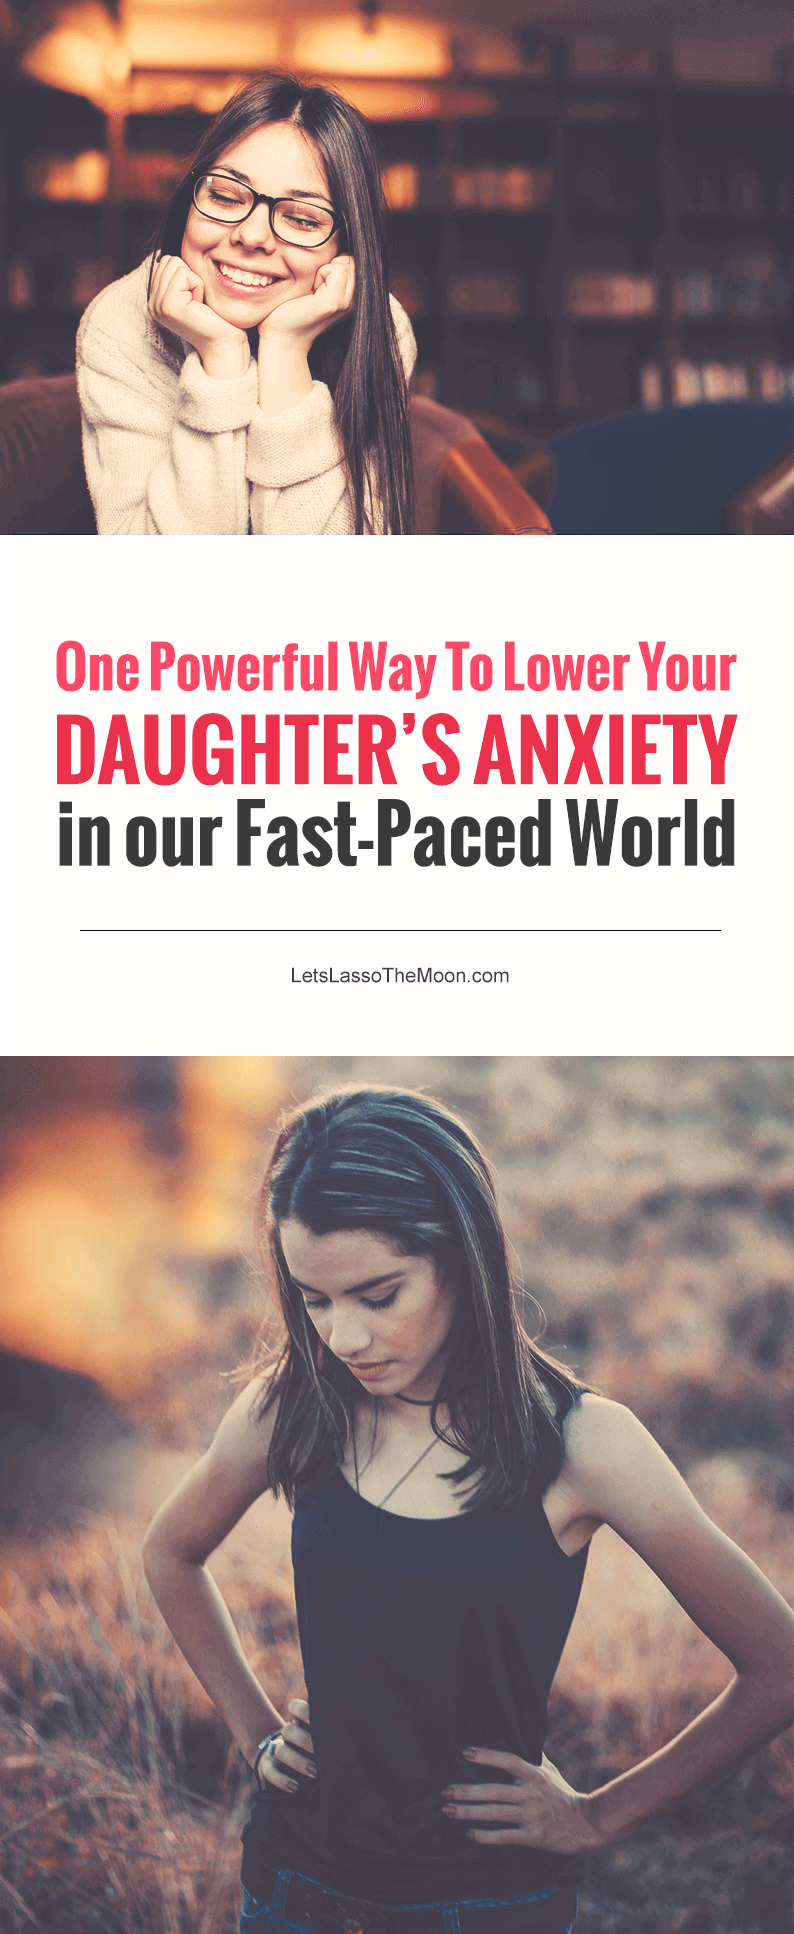 One Powerful Way to Lower your Daughter's Anxiety in our Fast Paced World - When pressure, expectations, and stress make your daughter's world start spinning a little too fast, this is one powerful way to guide her back toward inner calm, peace, and stillness. Below are three ways mindfulness for teens is pivotal during these transition years. #parenting #minfulness #teens *Love this post!